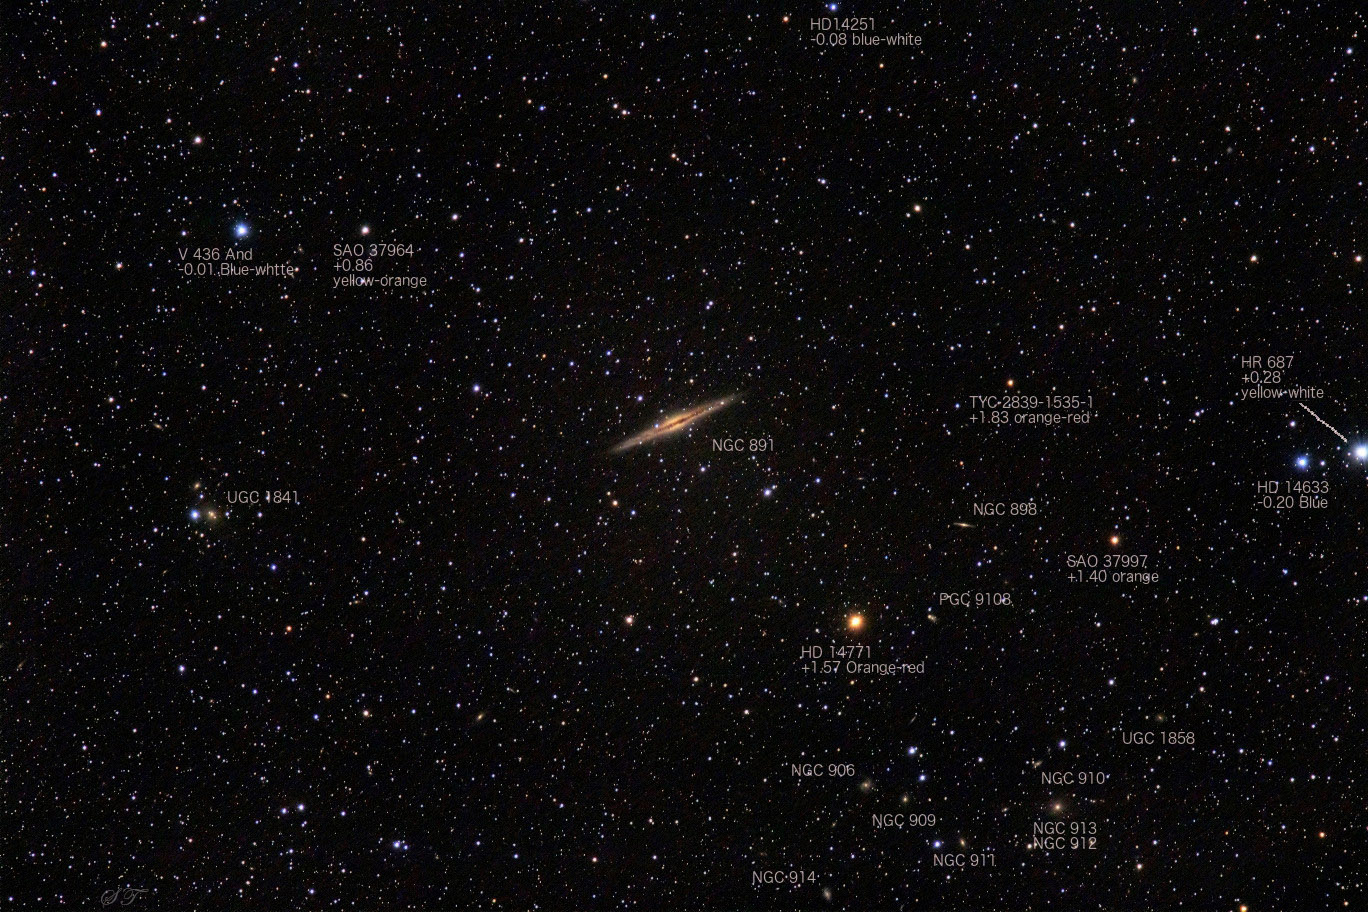 070_700mm_181102_HA_33x90s_NGC891_7D2b_names.jpg